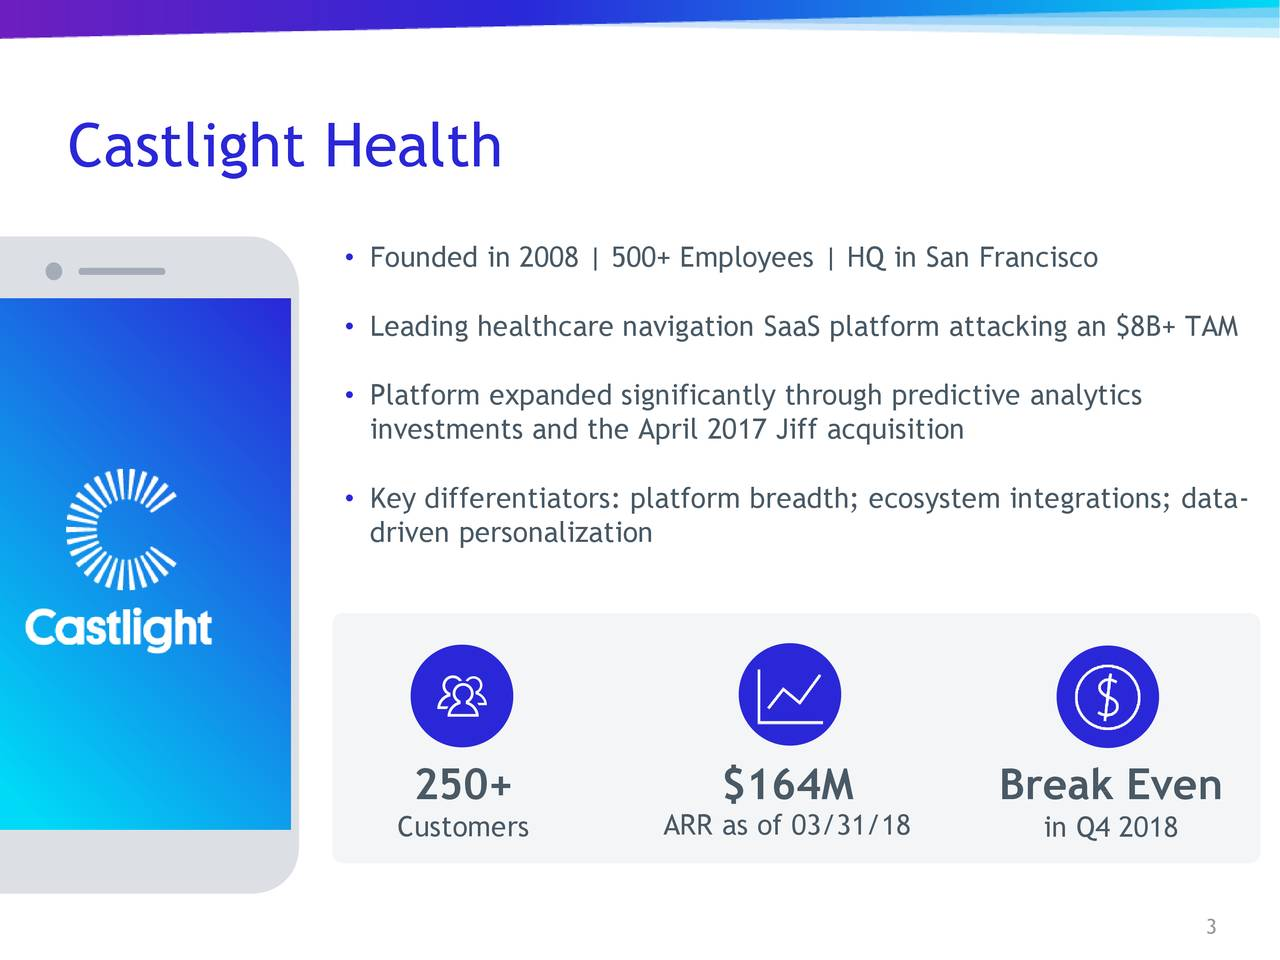 • Founded in 2008 | 500+ Employees | HQ in San Francisco • Leading healthcare navigation SaaS platform attacking an $8B+ TAM • Platform expanded significantly through predictive analytics investments and the April 2017 Jiff acquisition • Key differentiators: platform breadth; ecosystem integrations; data- driven personalization 250+ $164M Break Even Customers ARR as of 03/31/18 in Q4 2018 3